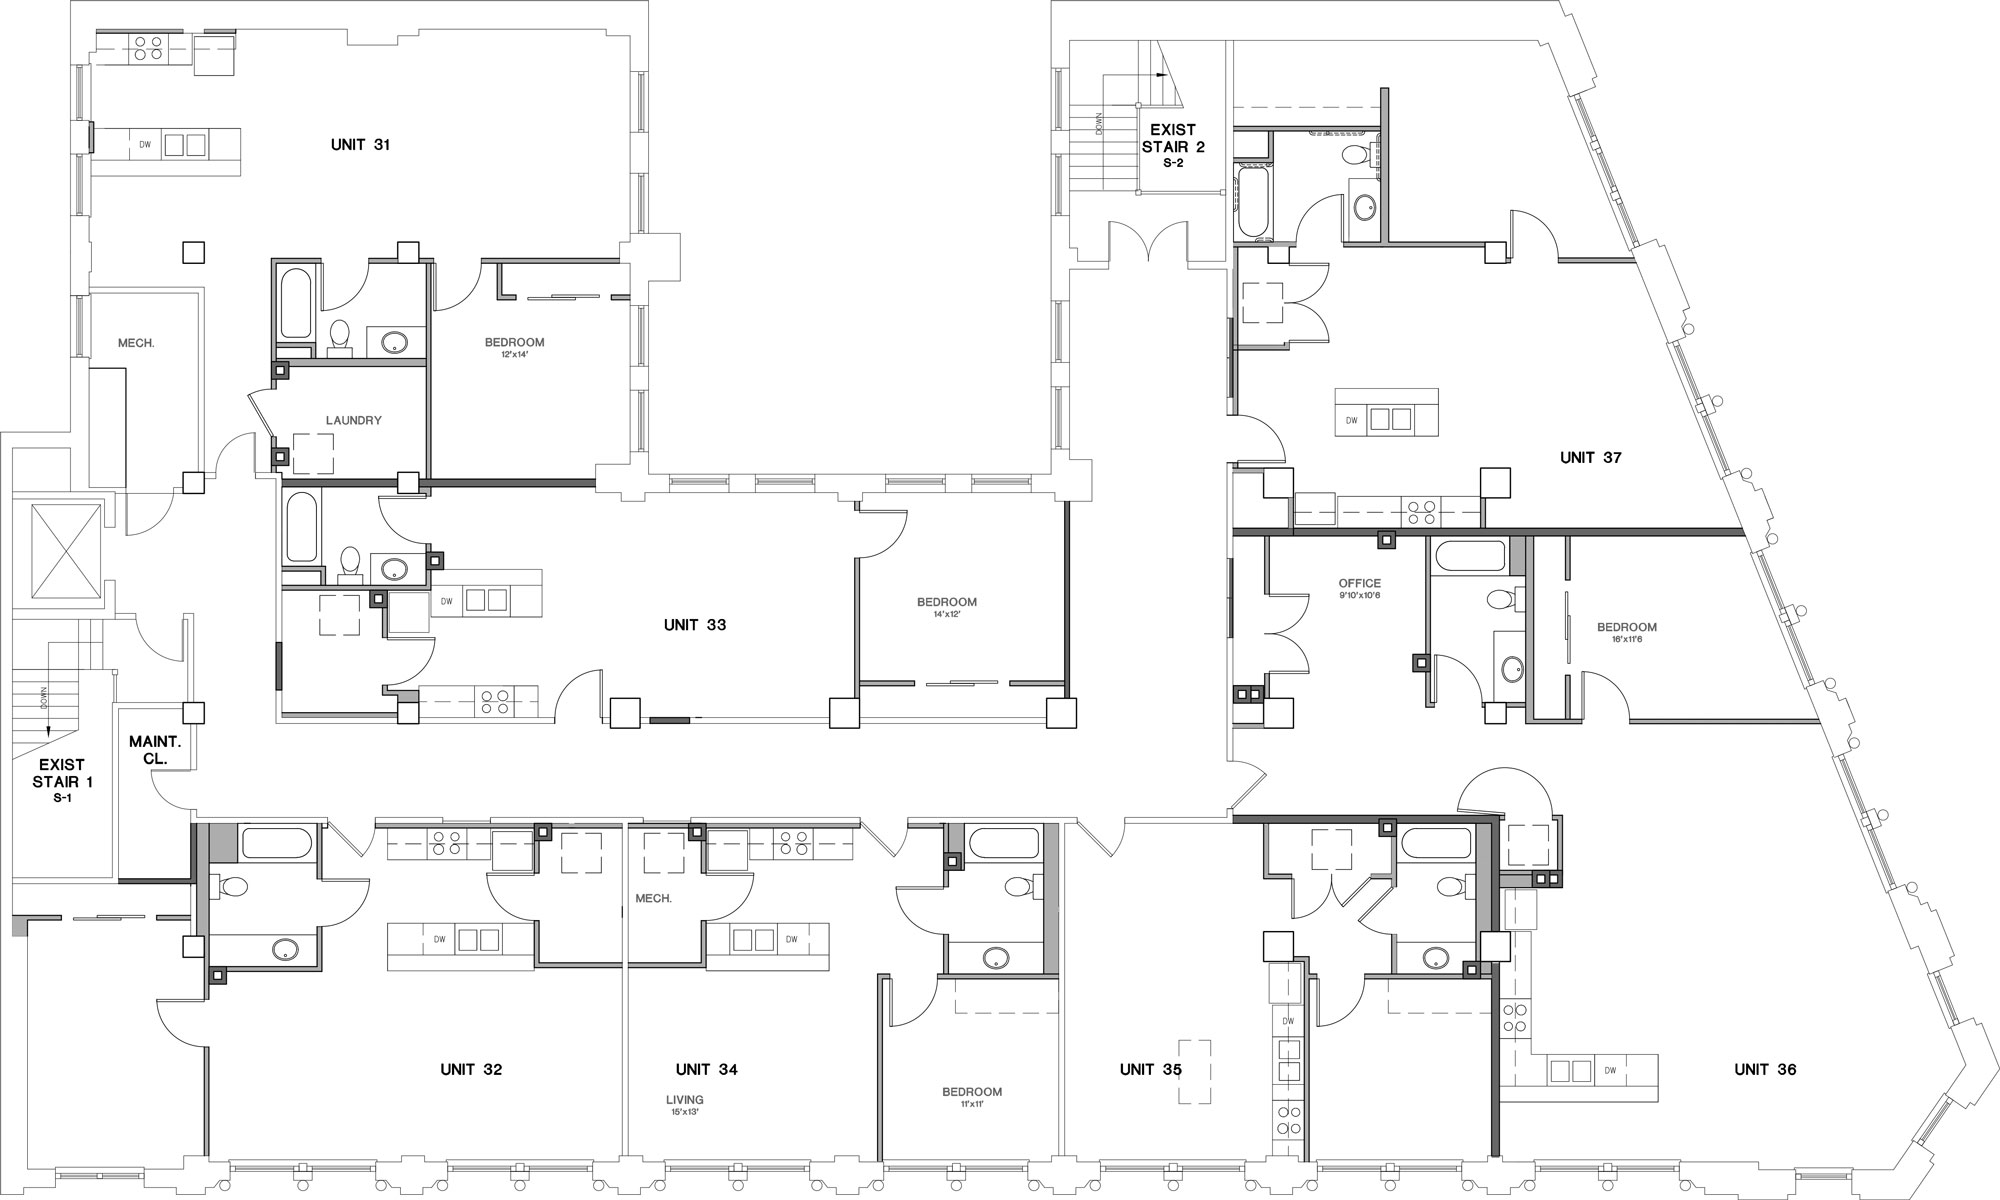 Mutual Building Third Floor Plan